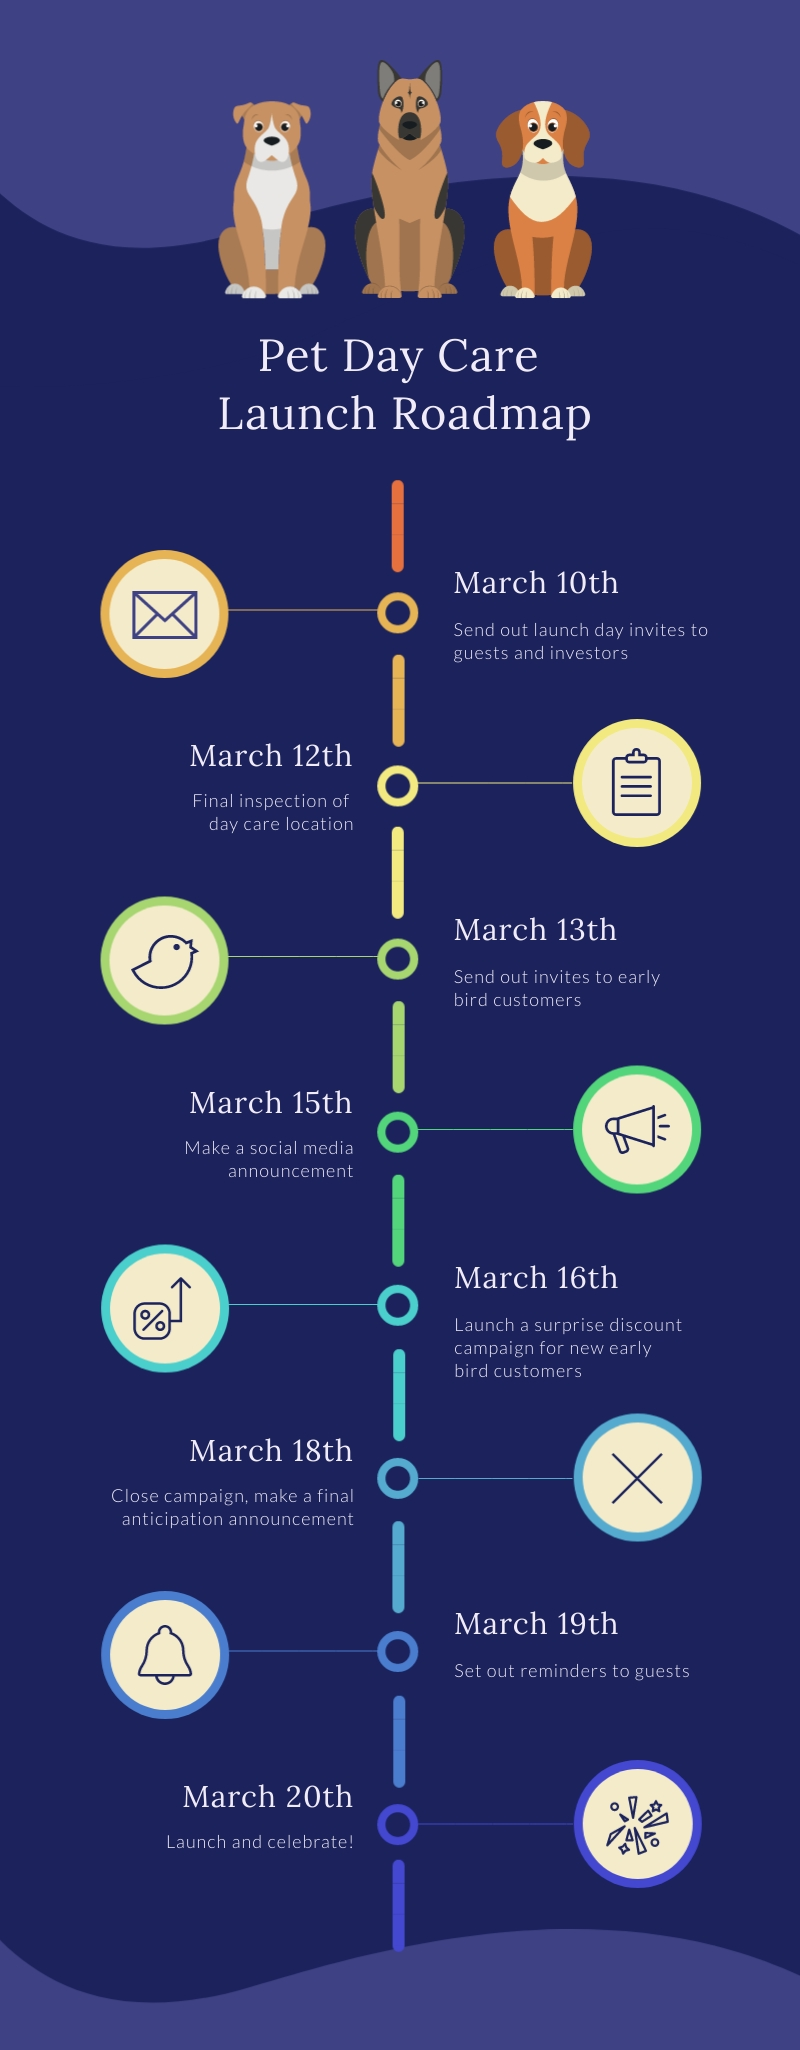 Pet Day Launch Roadmap - Infographic Template